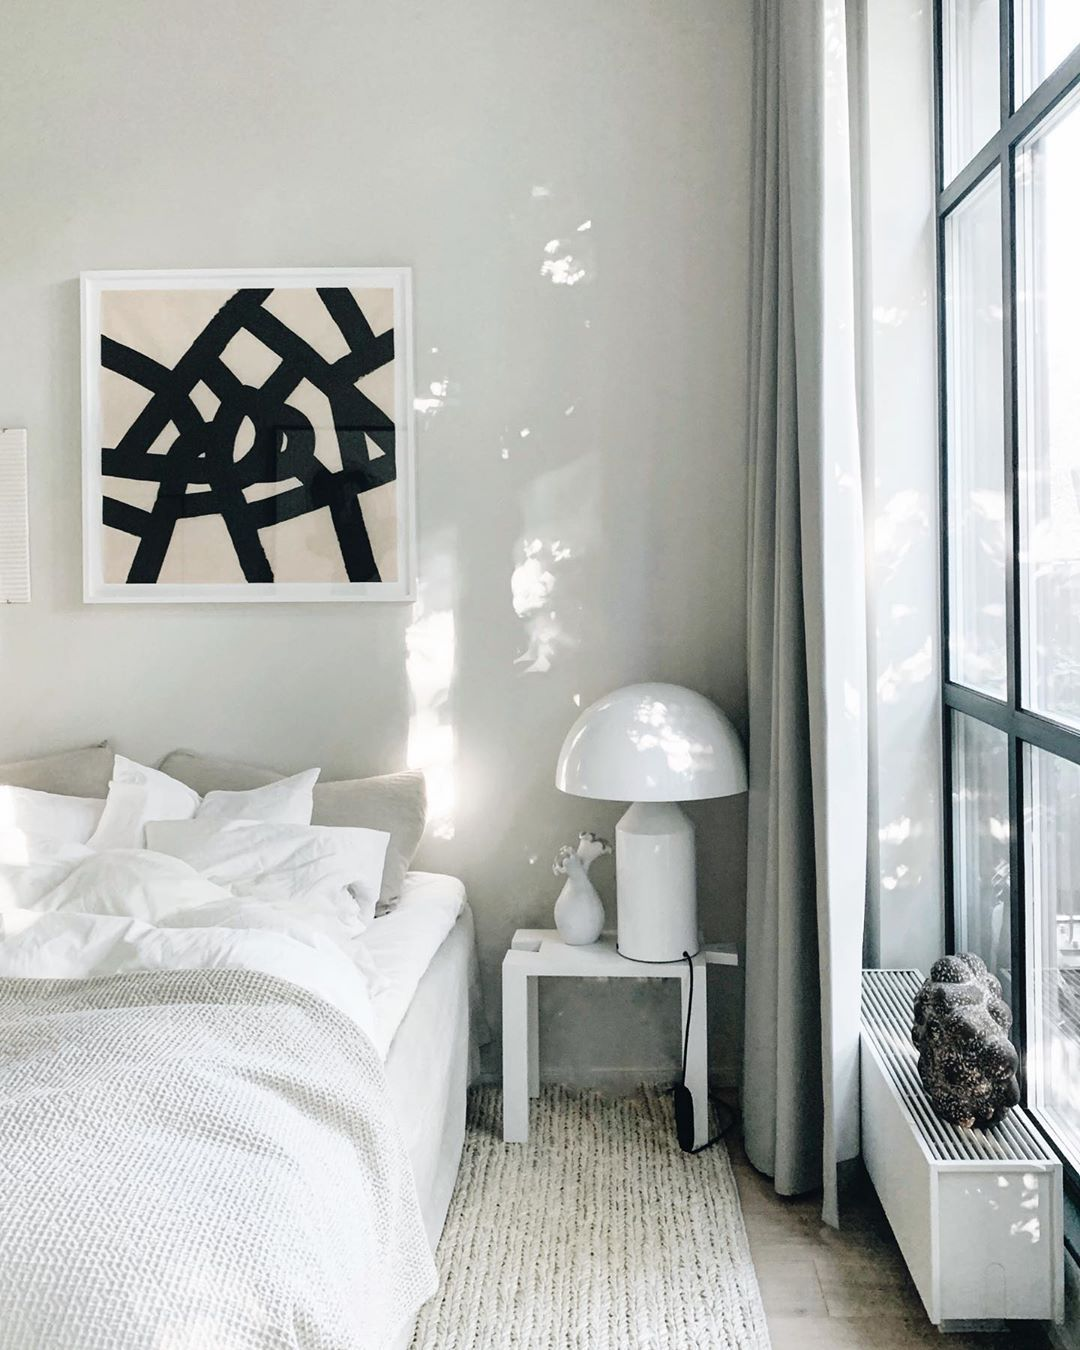 Hastens Being Collection By Ilse Crawford In The Home Of Interior Stylist Lotta Agaton Interior Bedroom Interior Modern Scandinavian Interior